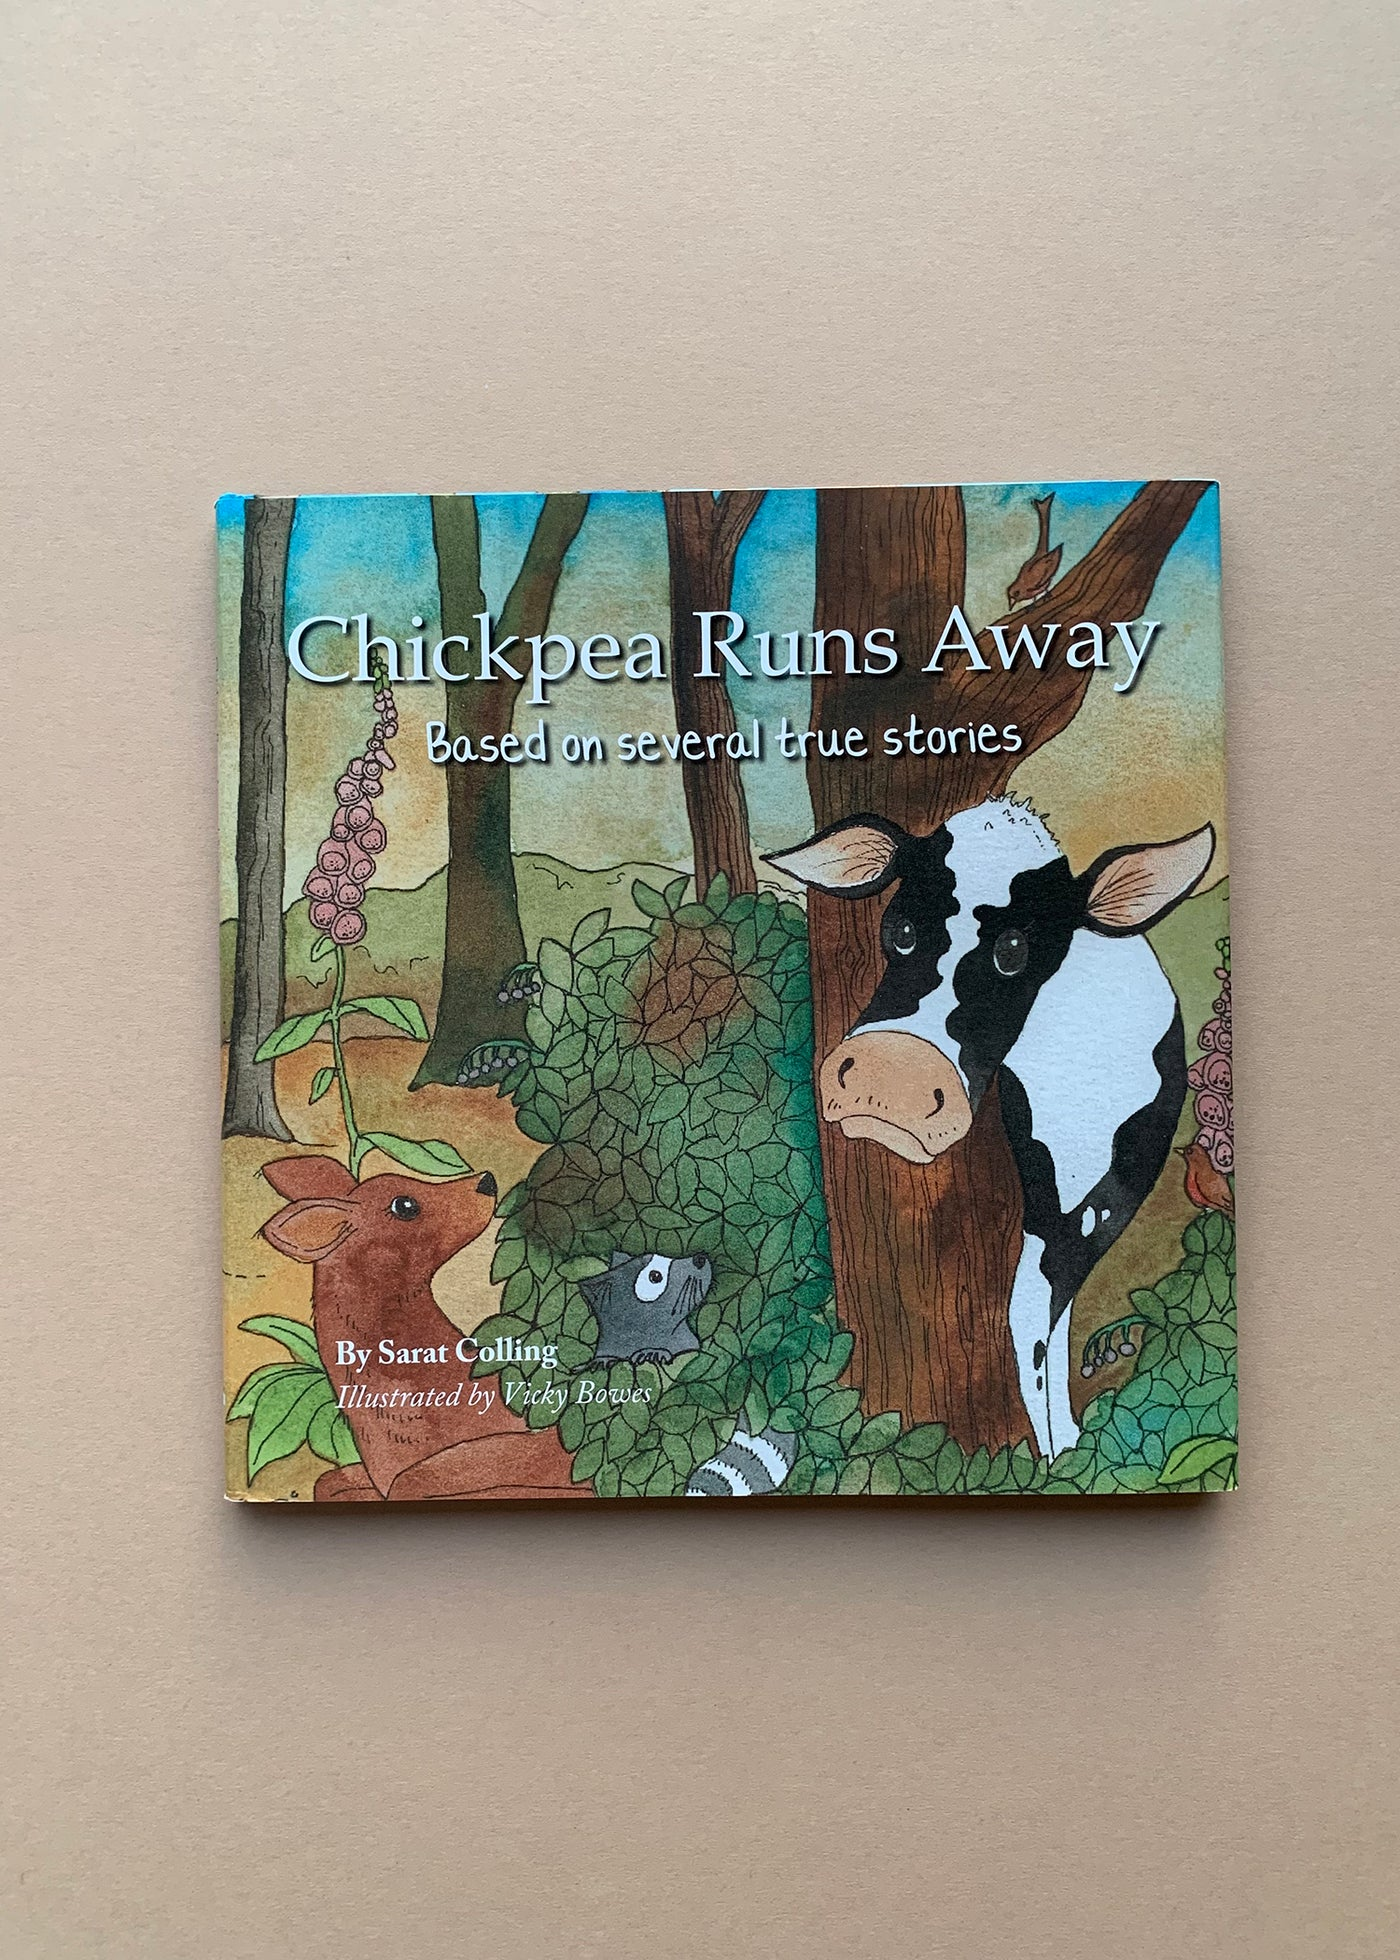 Chickpea Runs Away by Sarat Colling